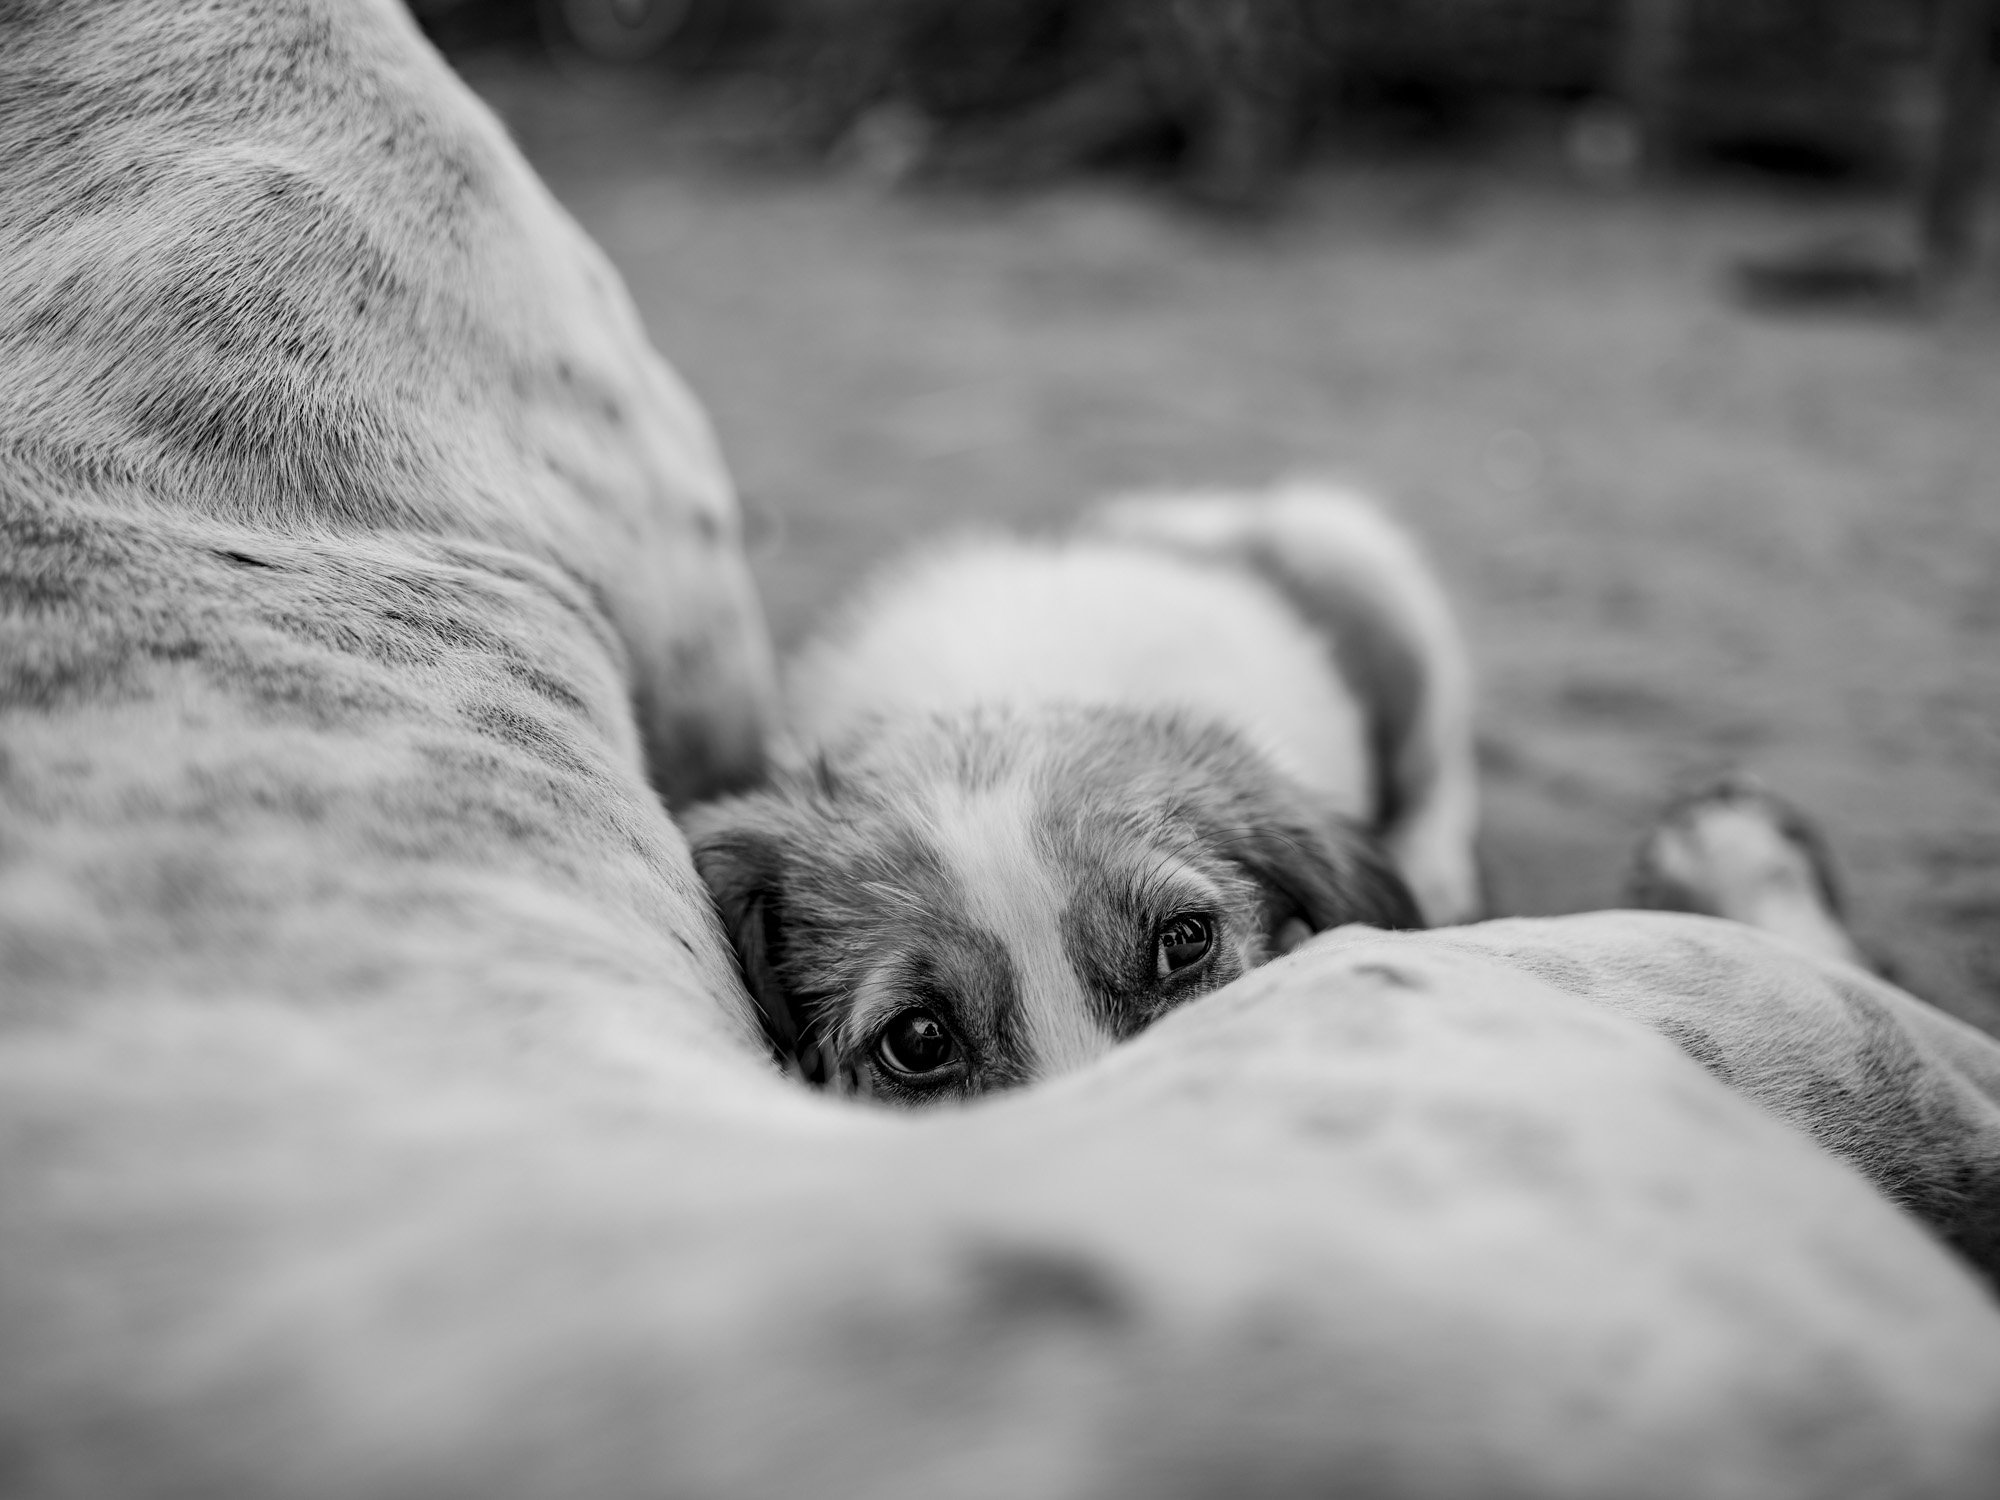 puppy Gypsy Kalbelia tribe nomad Rajasthan India Documentary Photography Jose Jeuland Photographer print fine art